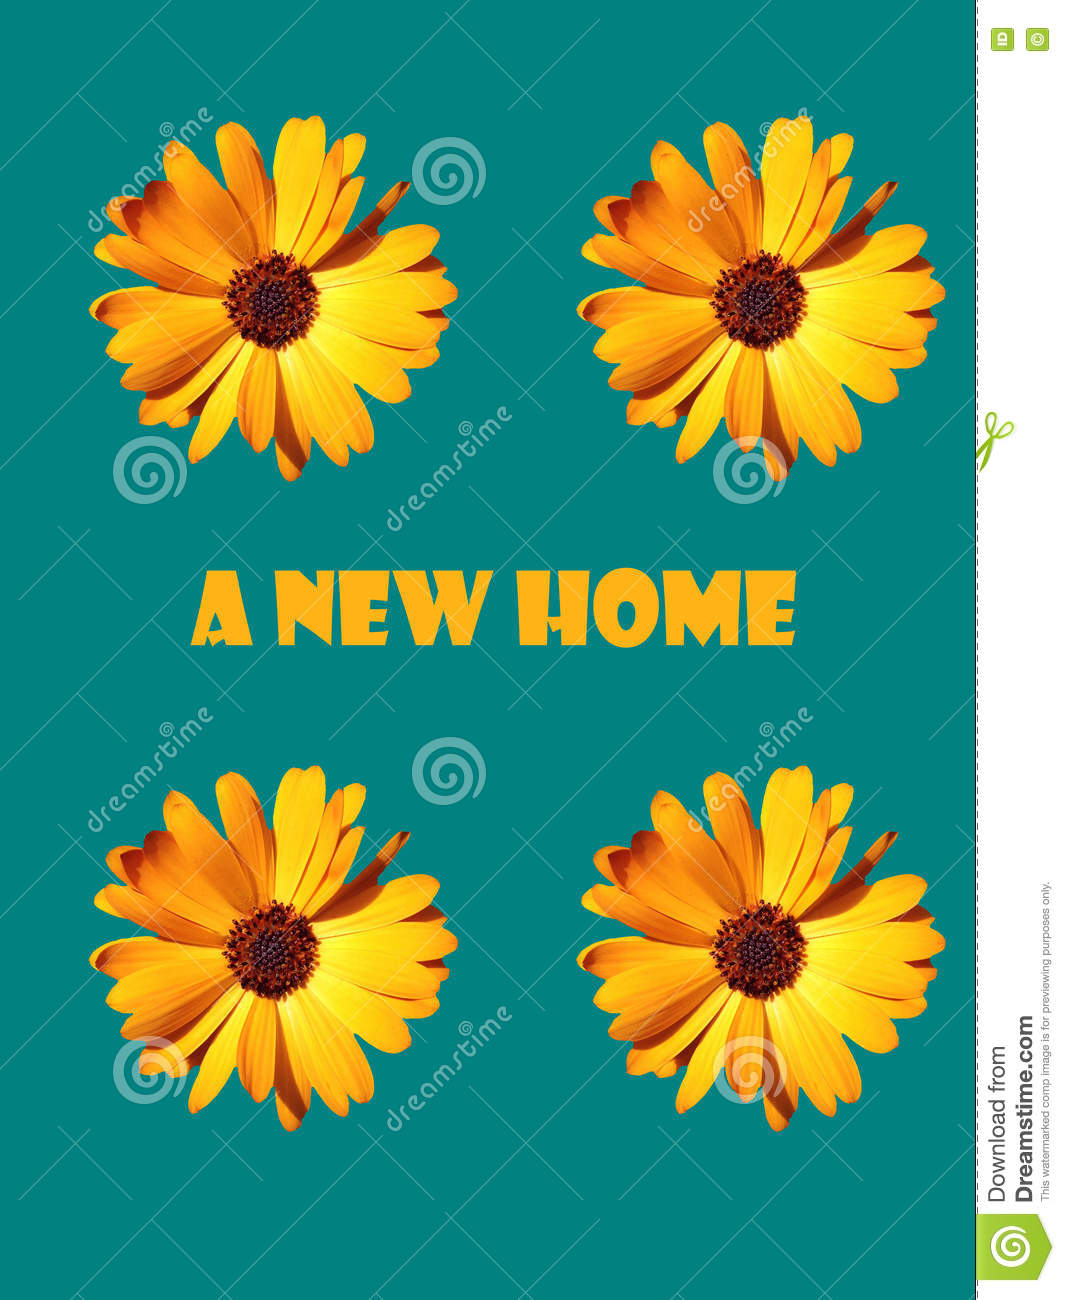 A New Home Stock Illustration Illustration Of Greeting 77200189